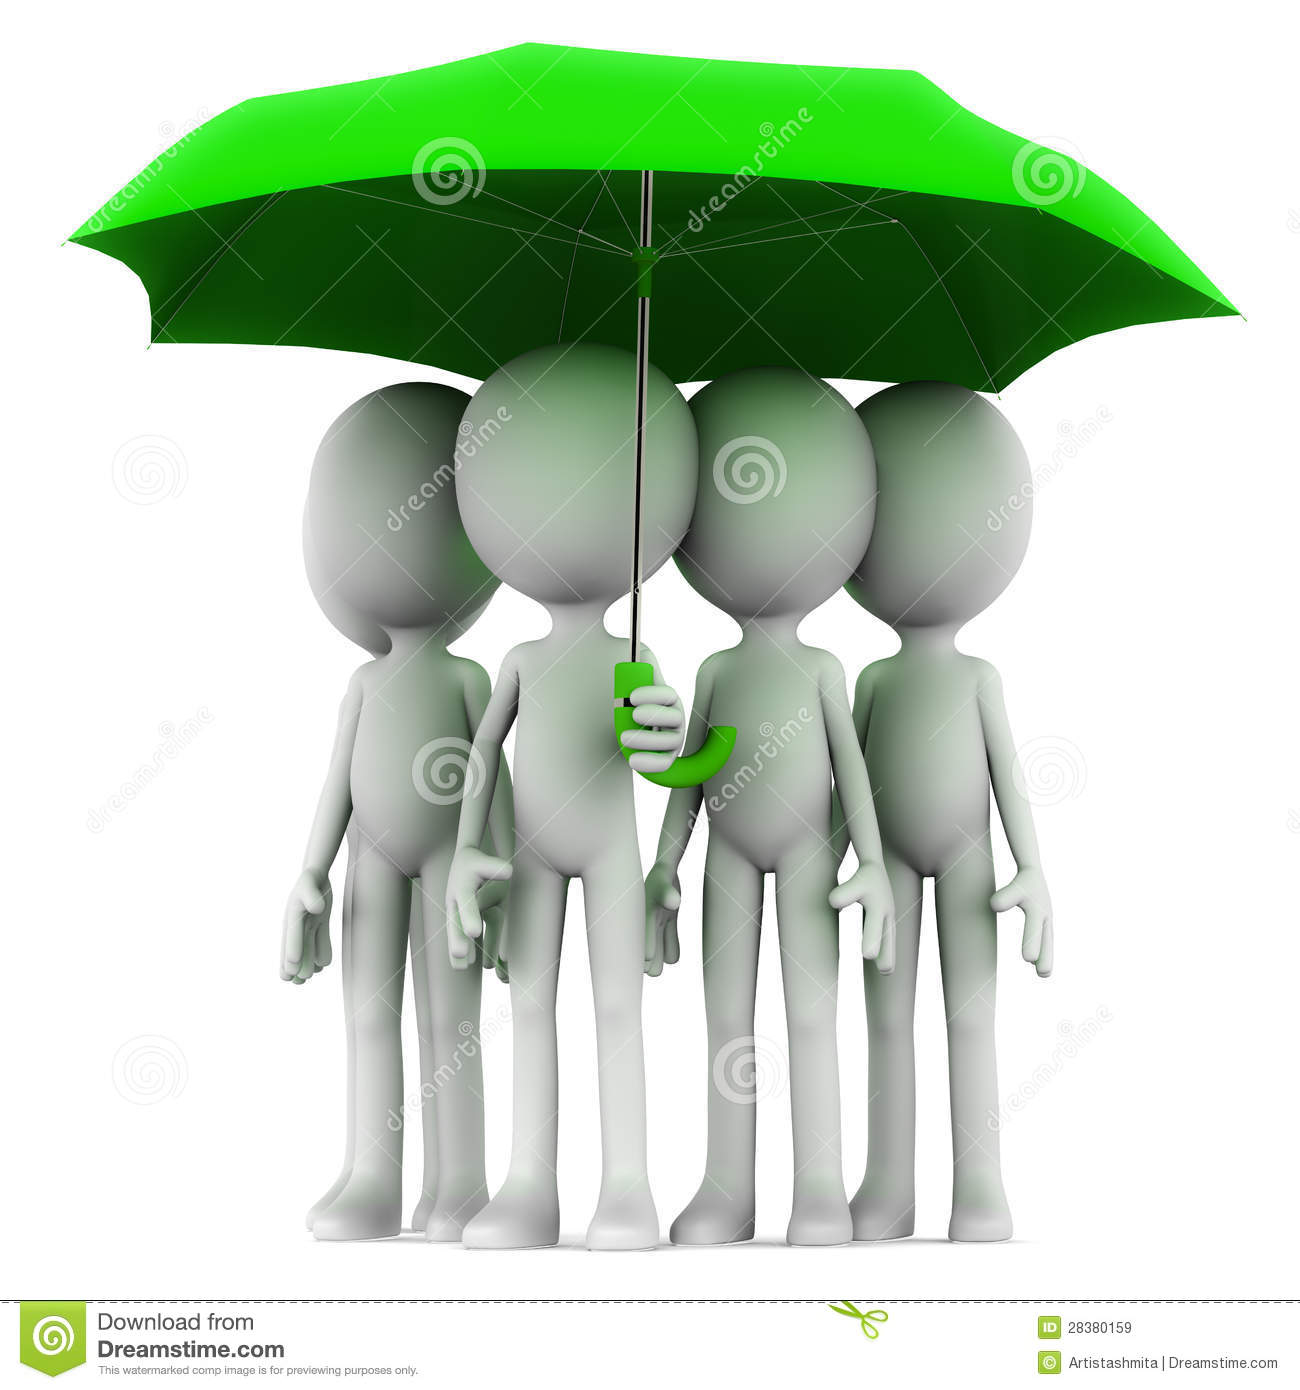 Group Insurance Royalty Free Stock Images - Image: 28380159